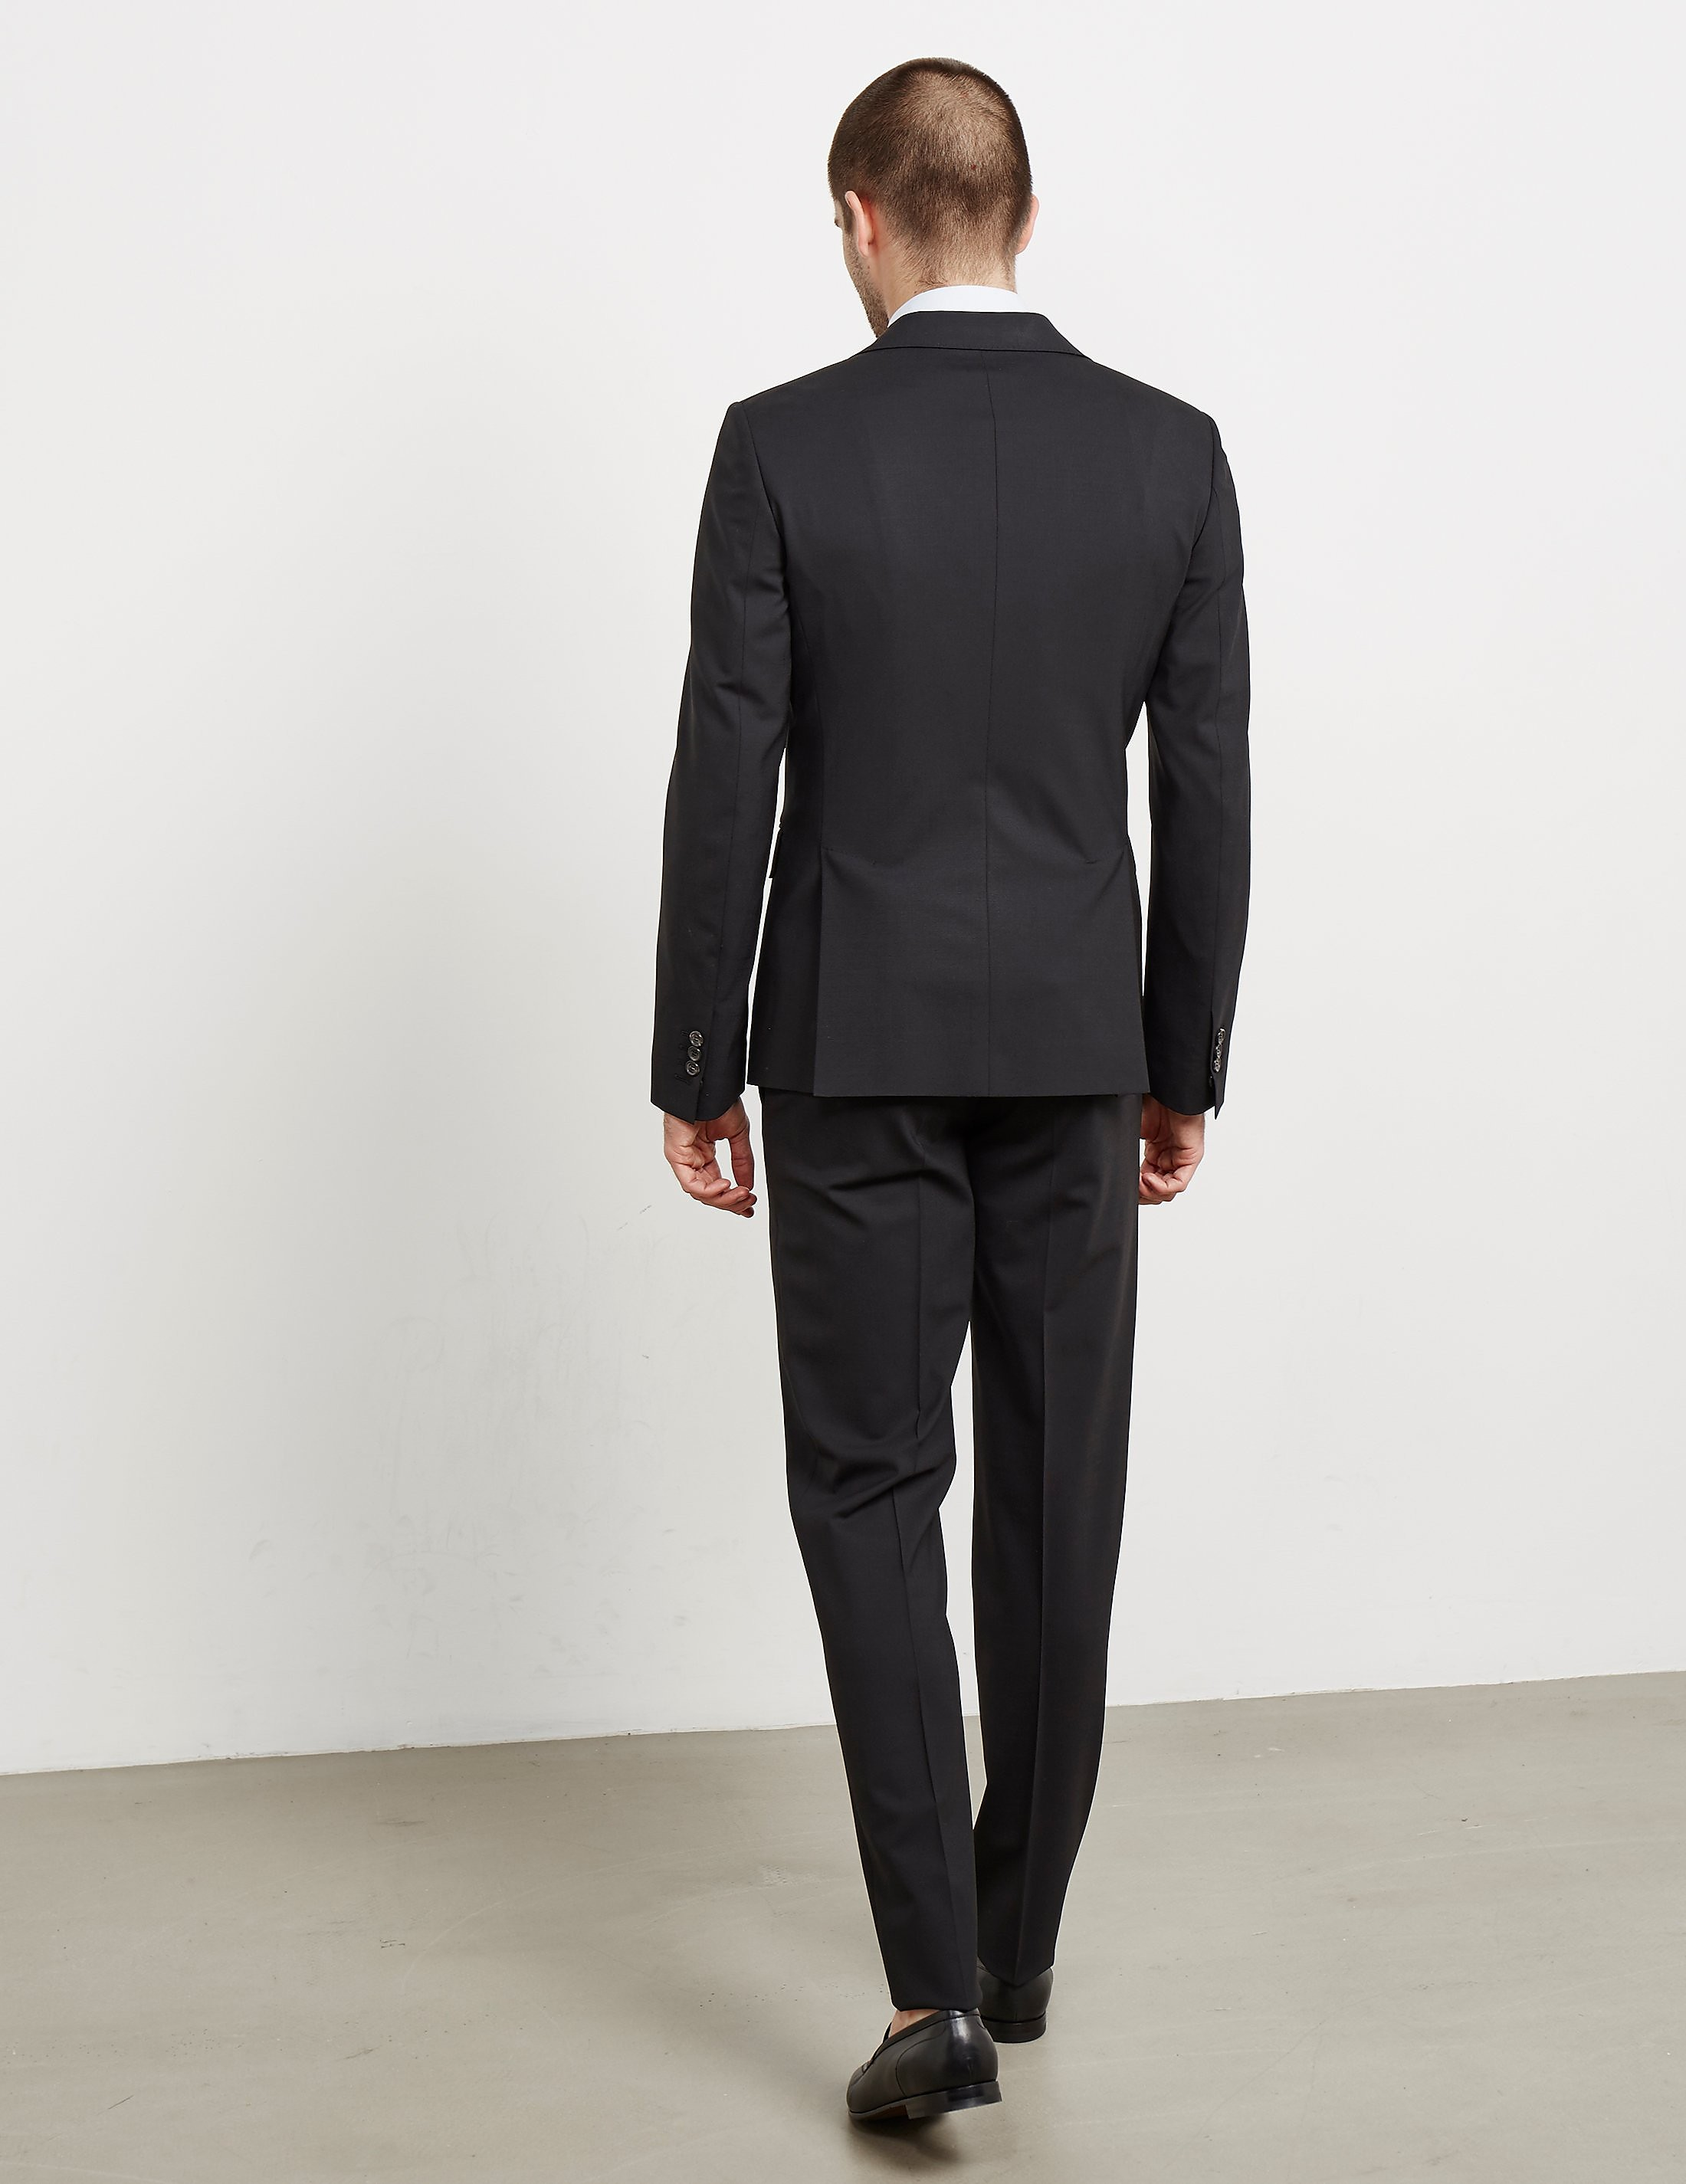 Dsquared2 Manchester Suit - Online Exclusive